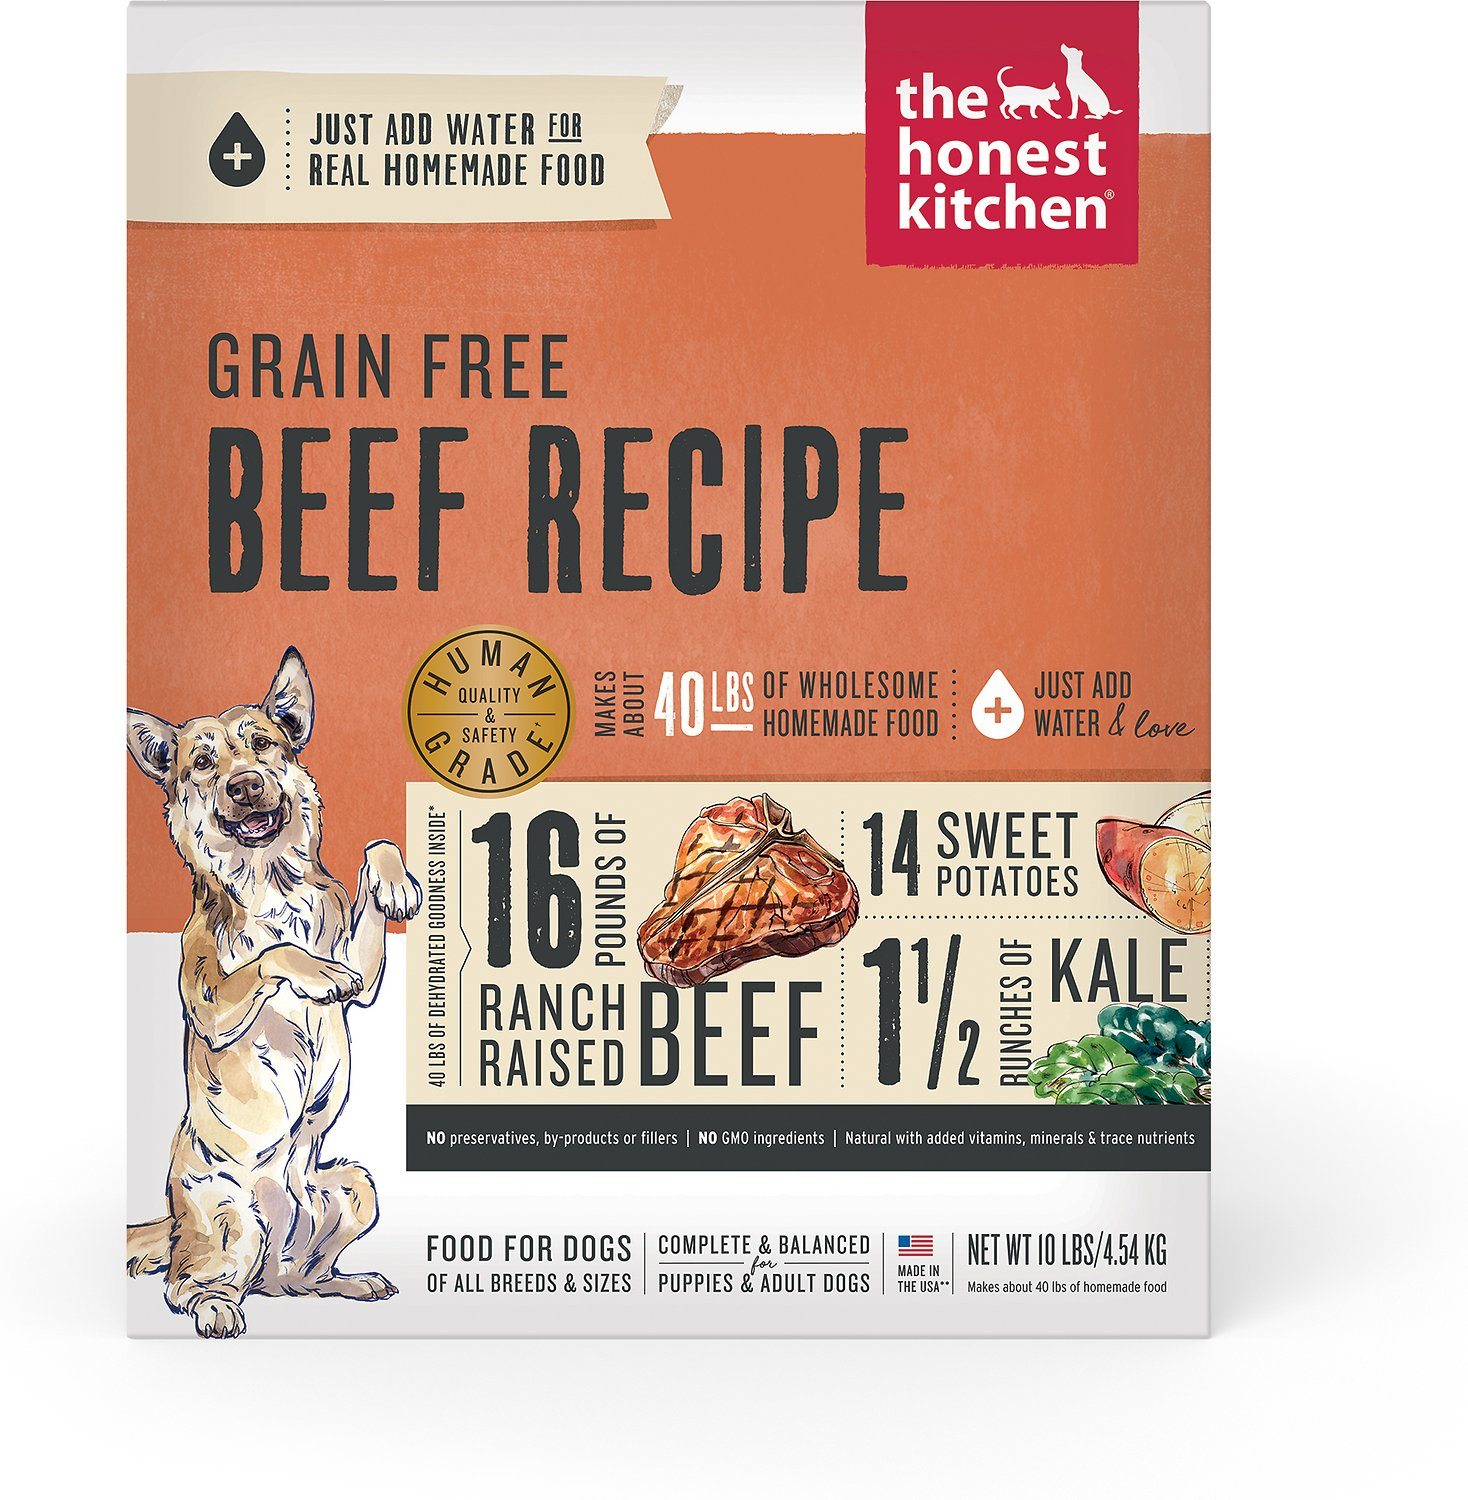 the honest kitchen commercial wall covering grain free beef recipe dehydrated dog food 10 lb